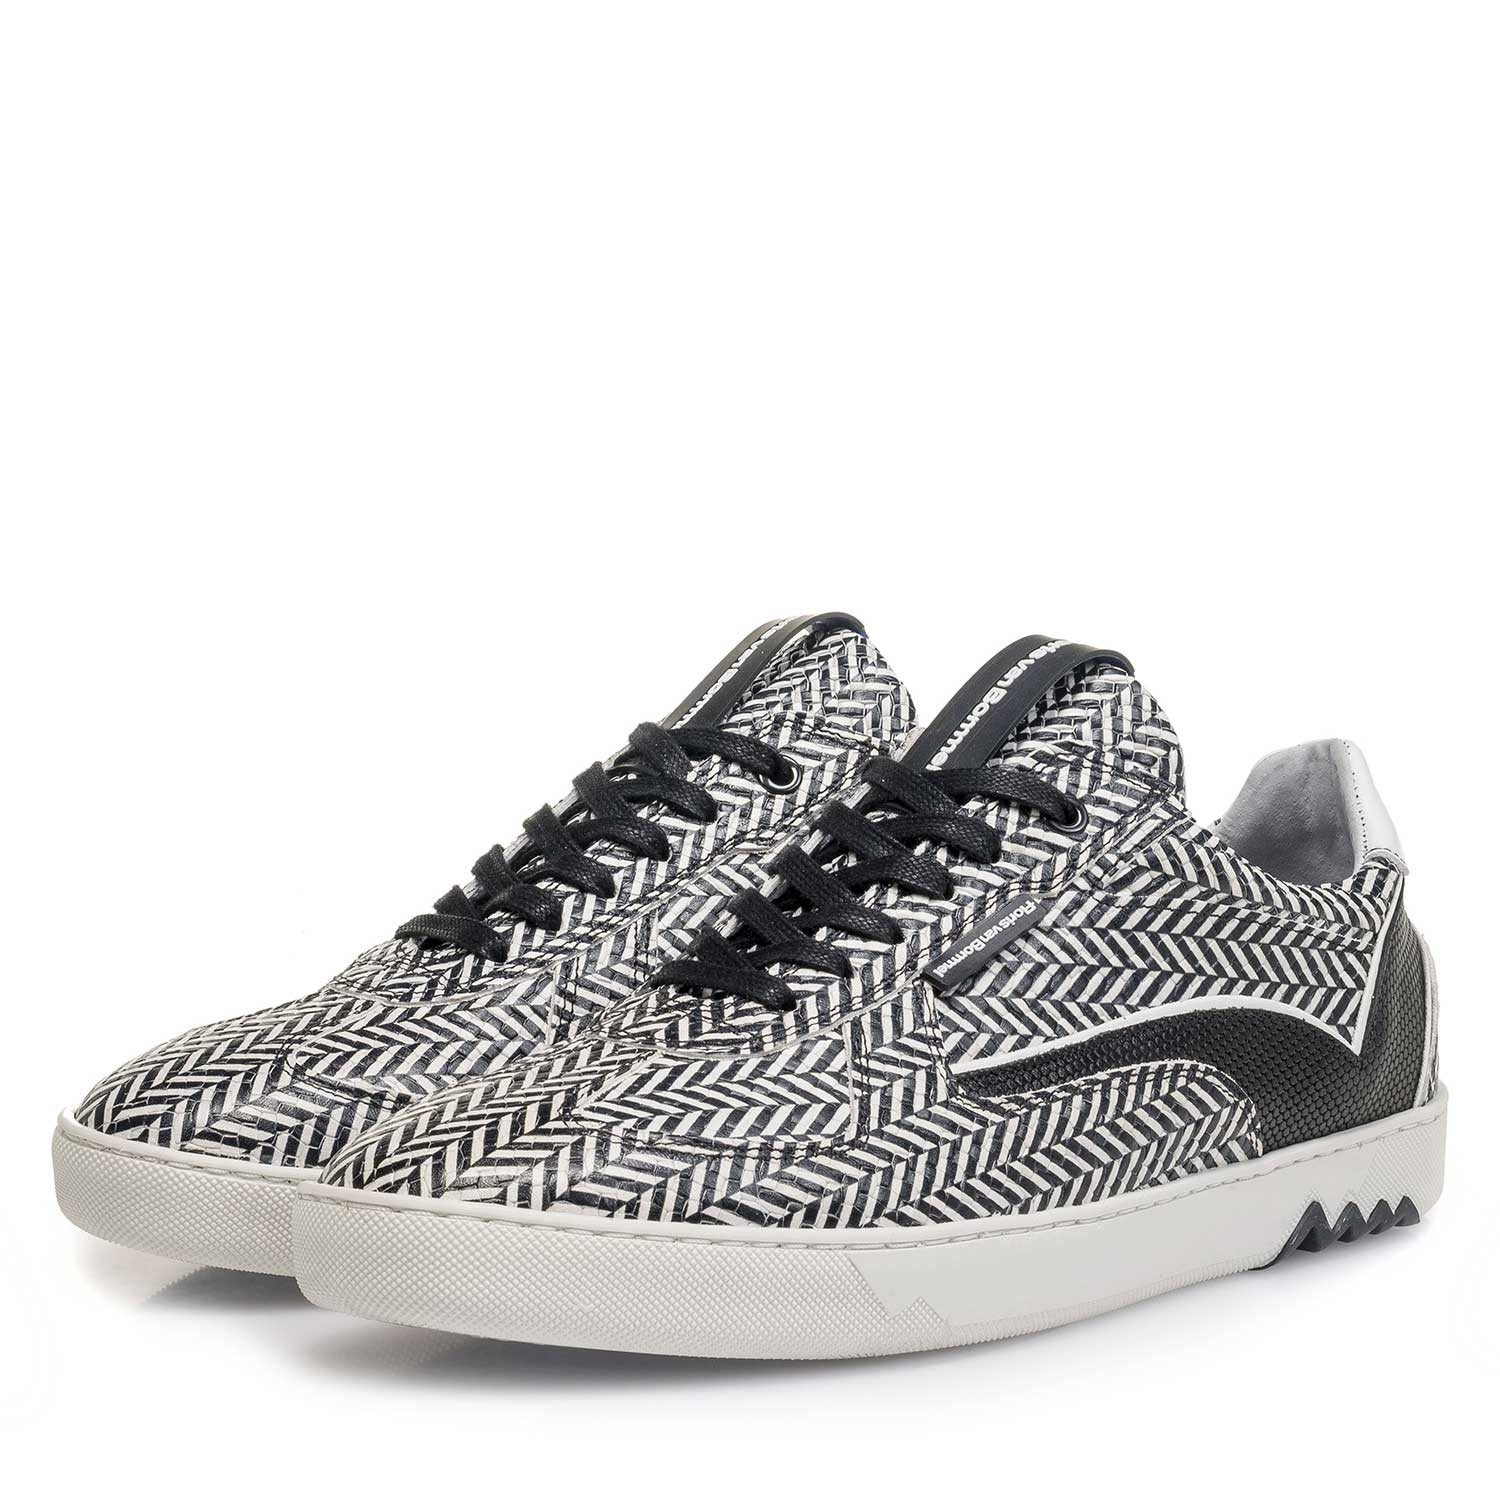 16342/07 - Black & white leather sneaker with a herringbone pattern